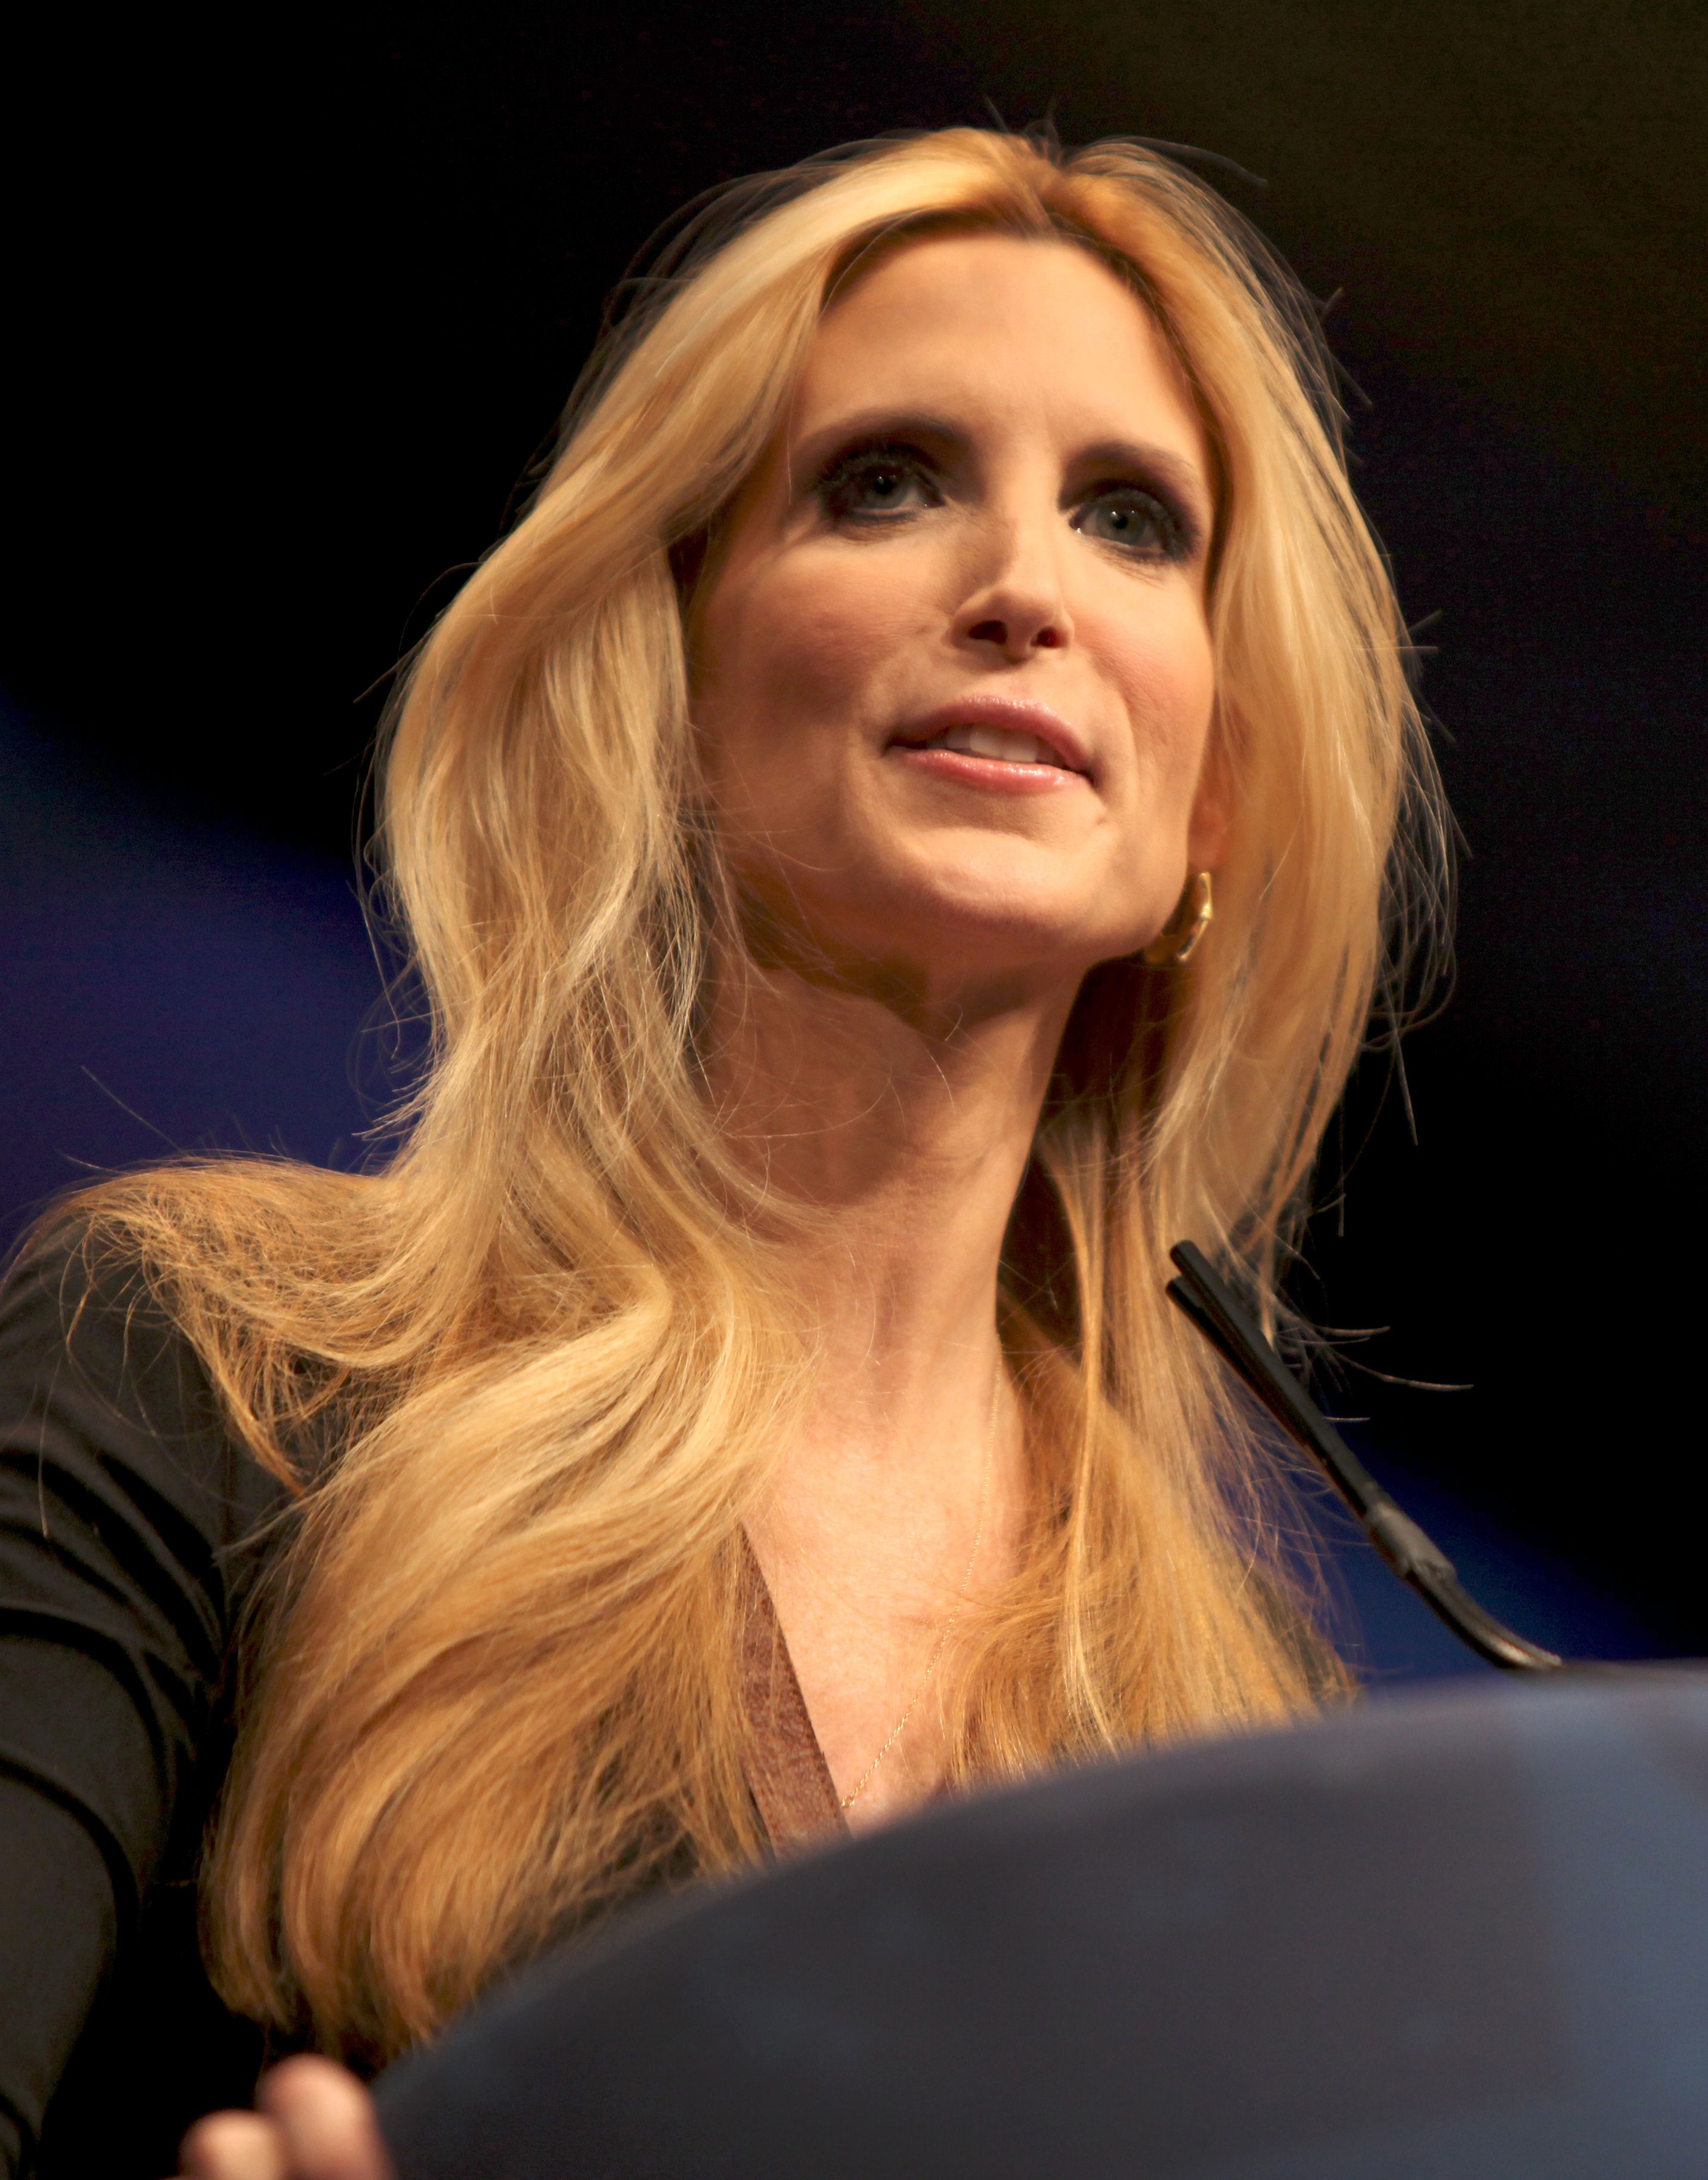 Ann Coulter on Crying Immigrant Kids: 'Don't Fall for the Fake ann coulter photos